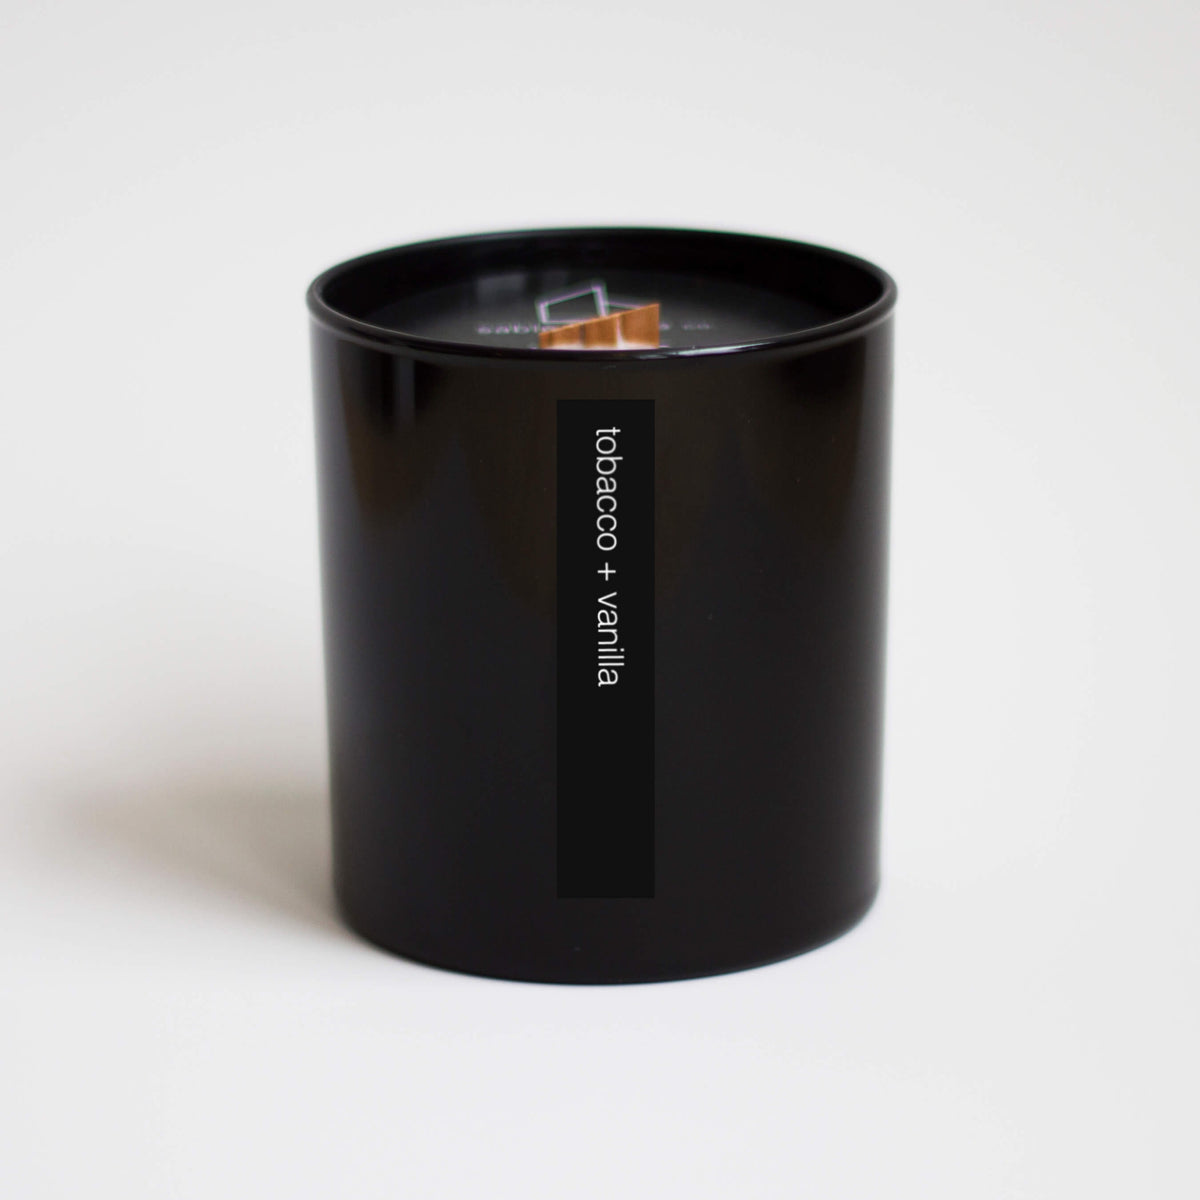 "Tall black container holding beige candle with wood wick. Words on outside read ""tobacco + vanilla""."